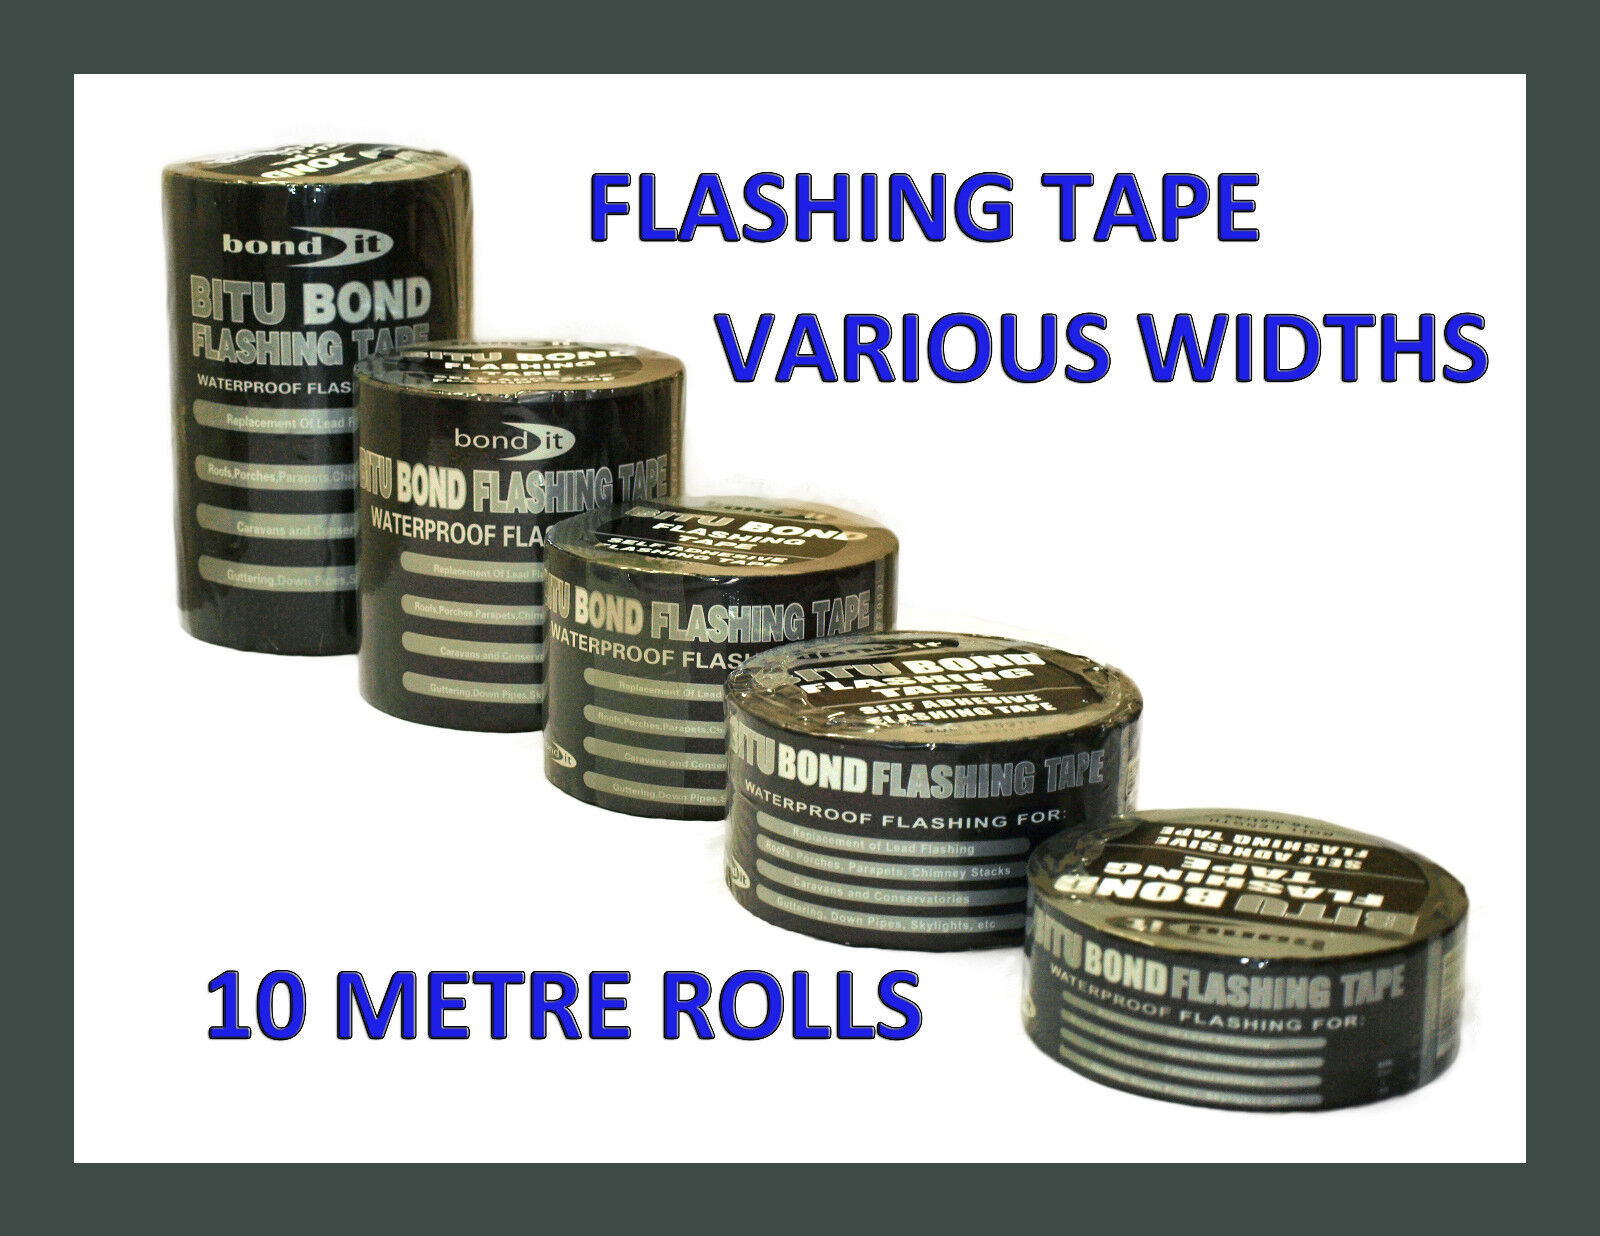 Flashing Tape Flash Band Roofing Repair Self Adhesive Tape